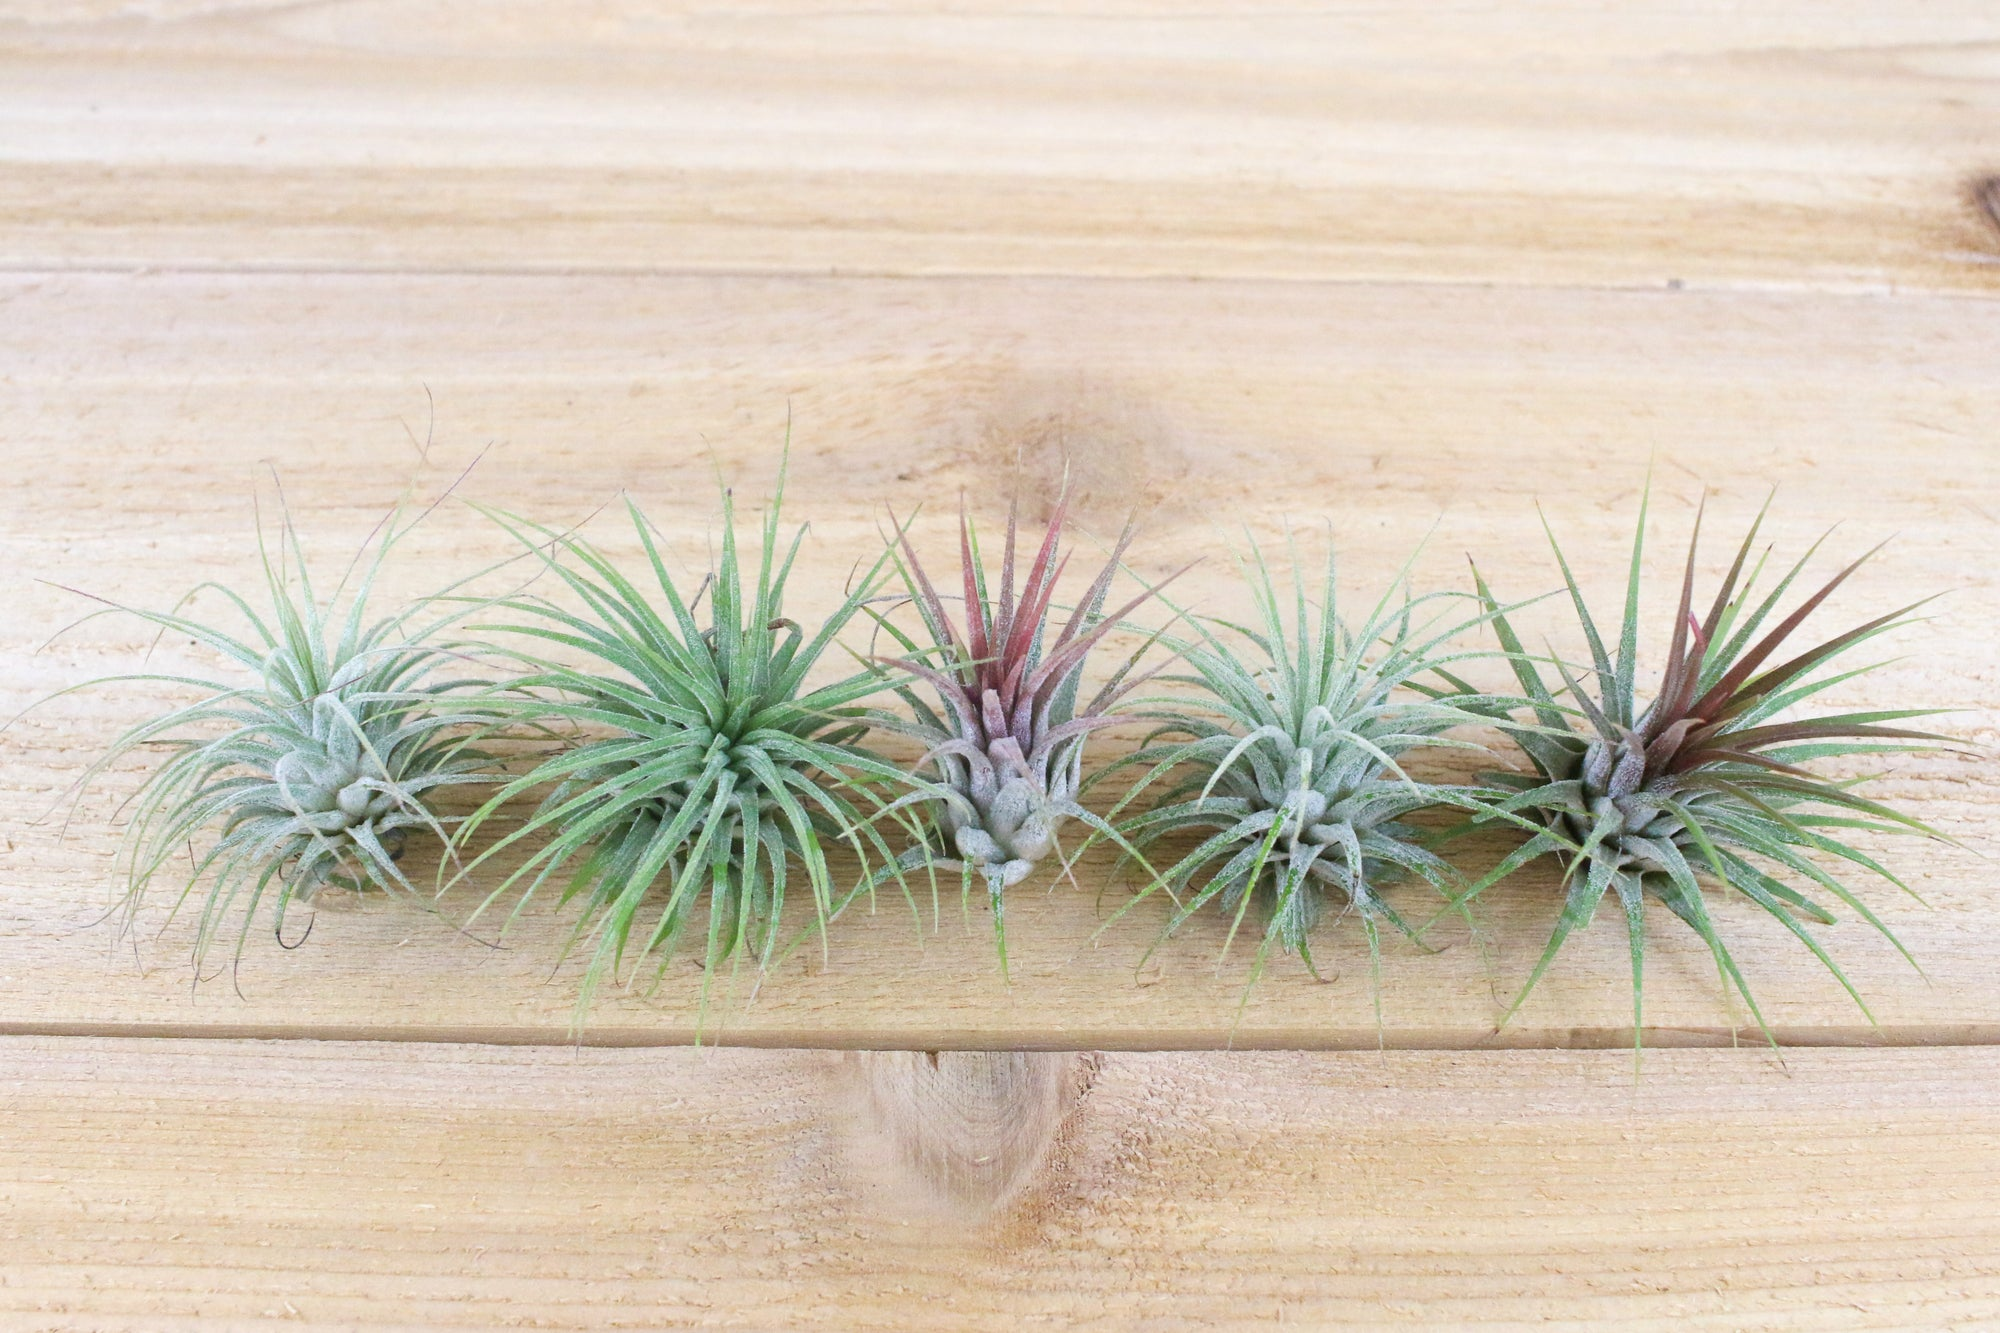 Sale: 70% Off [20, 30 or 50 Pack] Ionantha Guatemala Air Plants from AirPlantShop.com